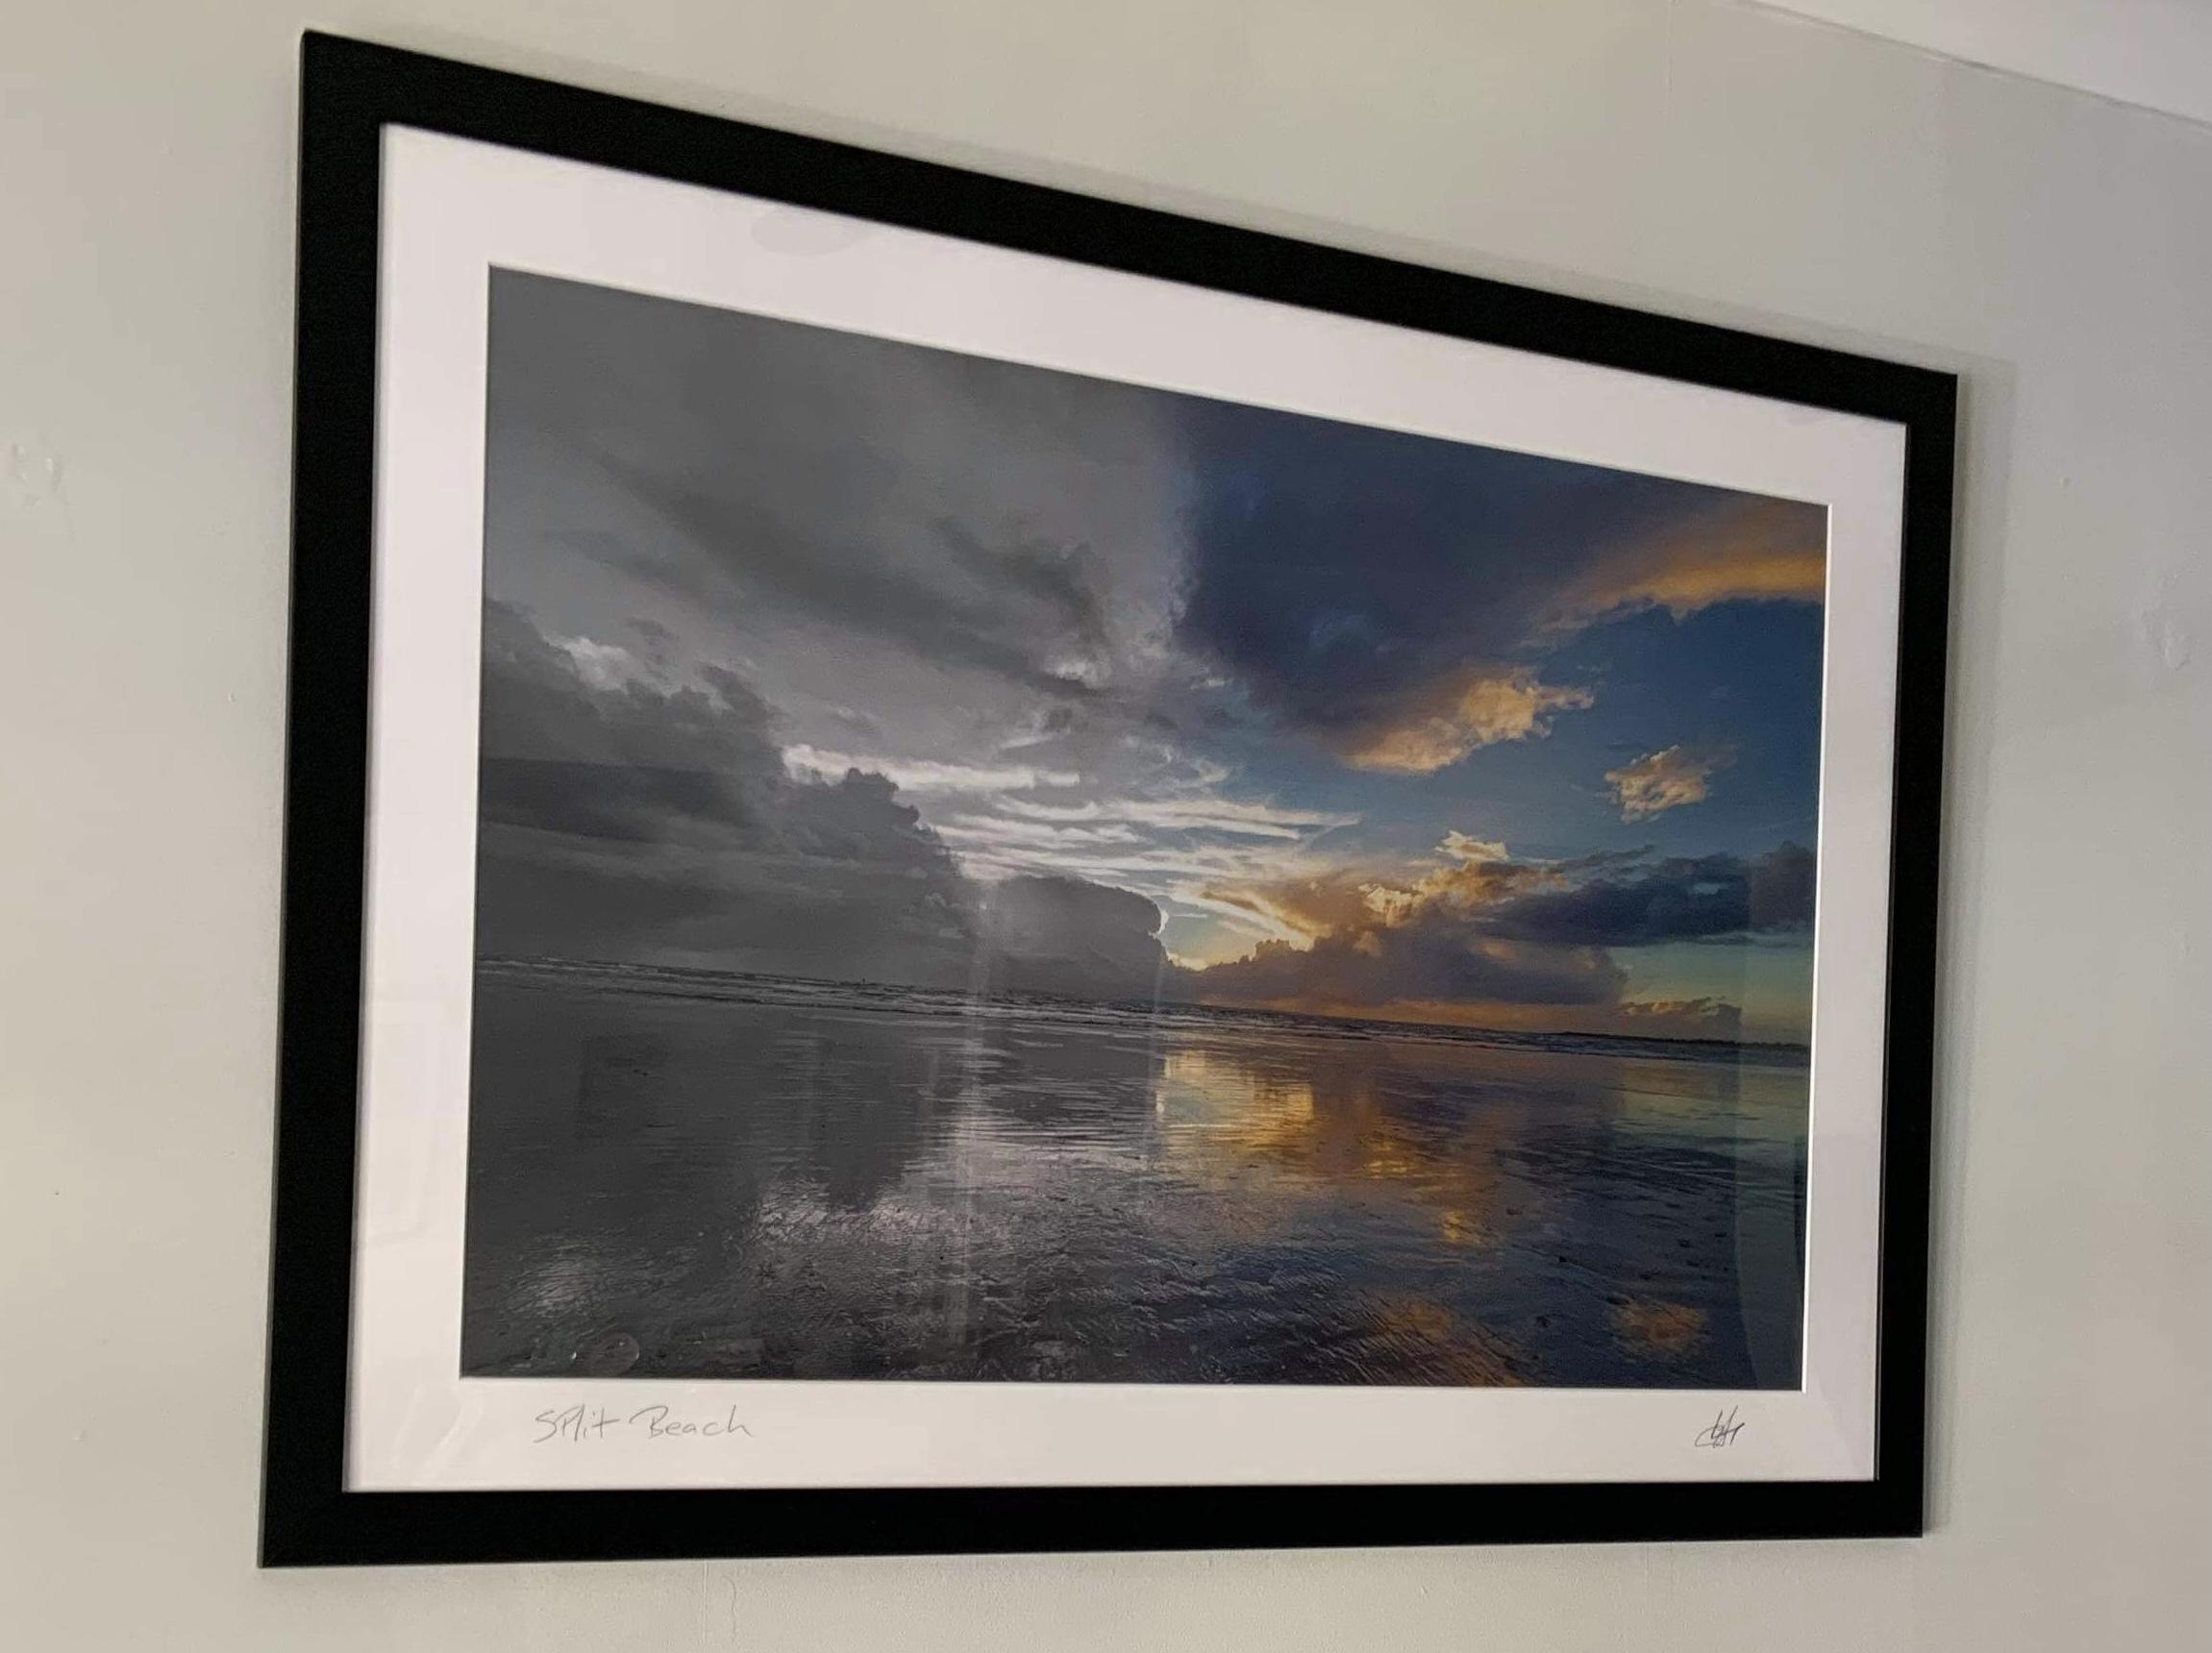 Split Beach - framed mounted and signed print